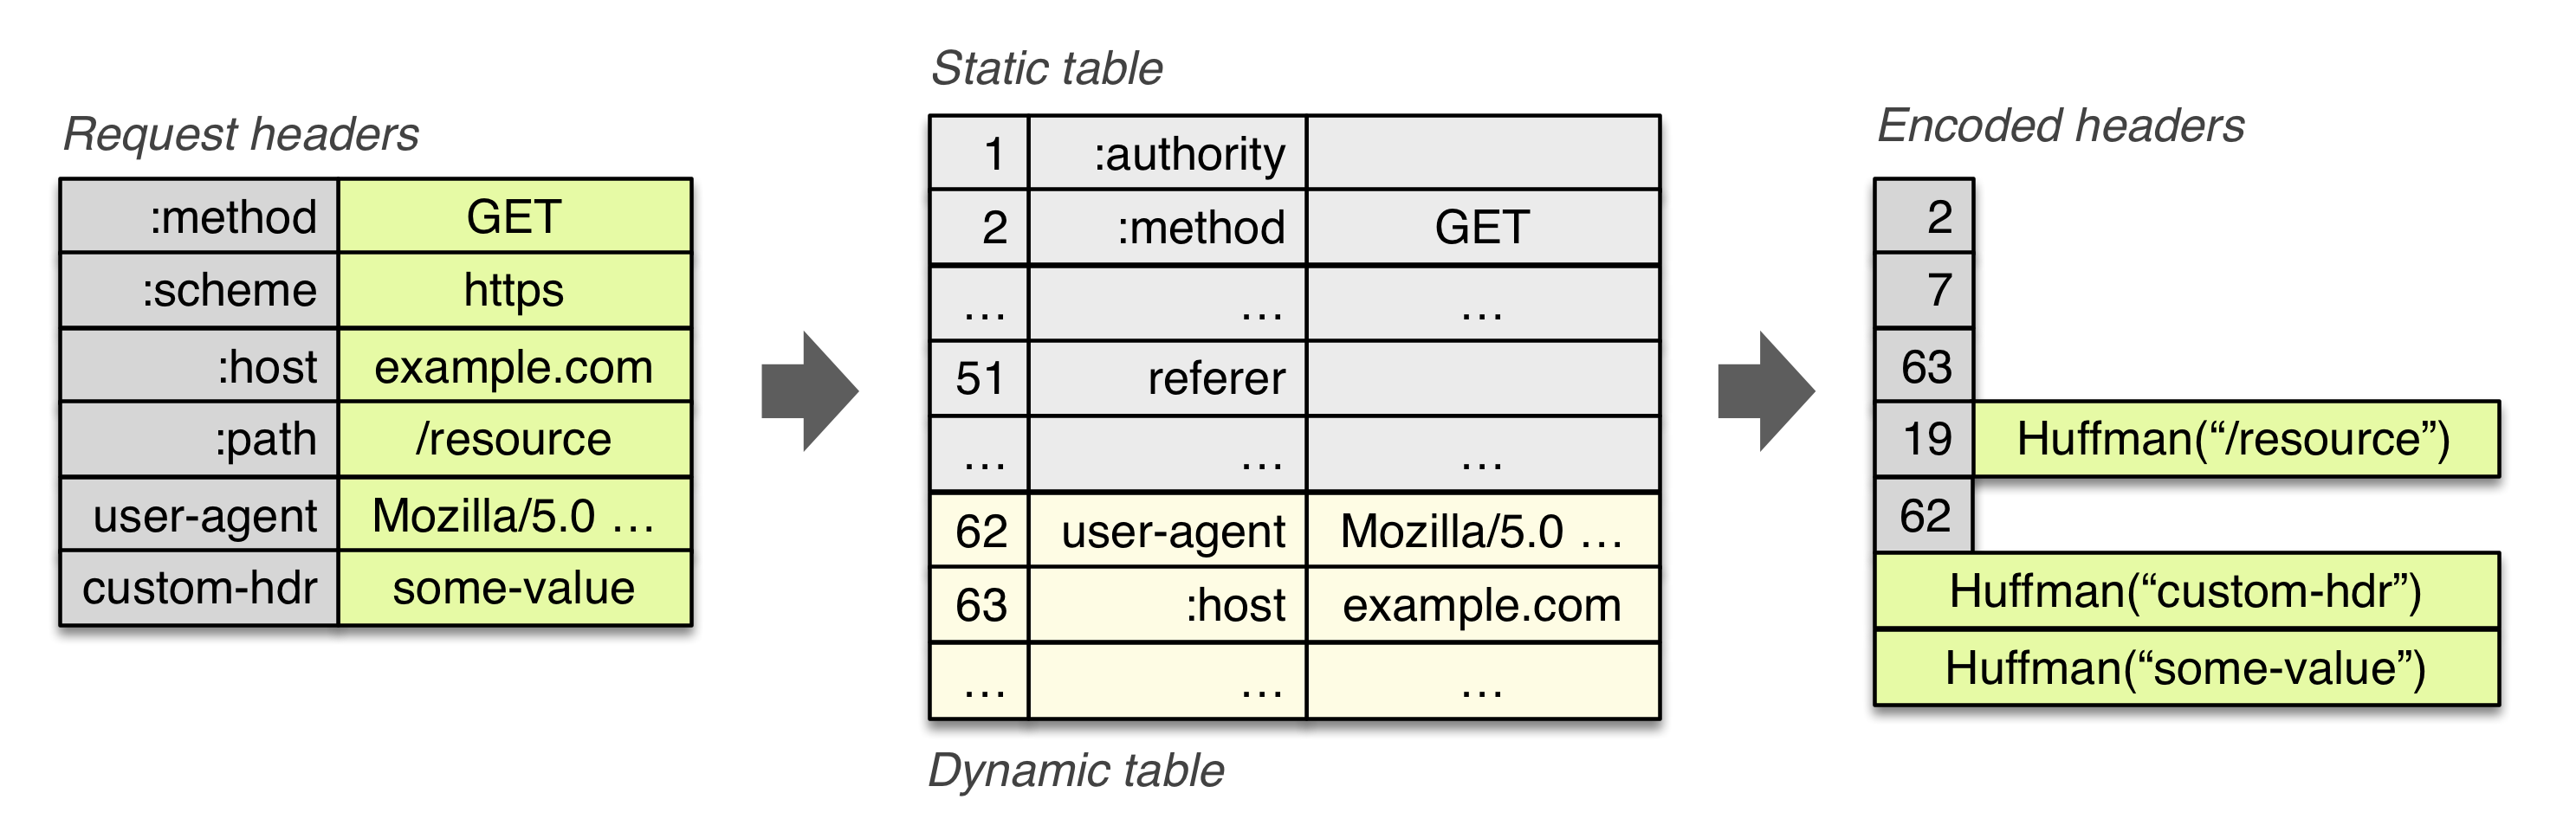 Differential coding of HTTP 2.0 headers